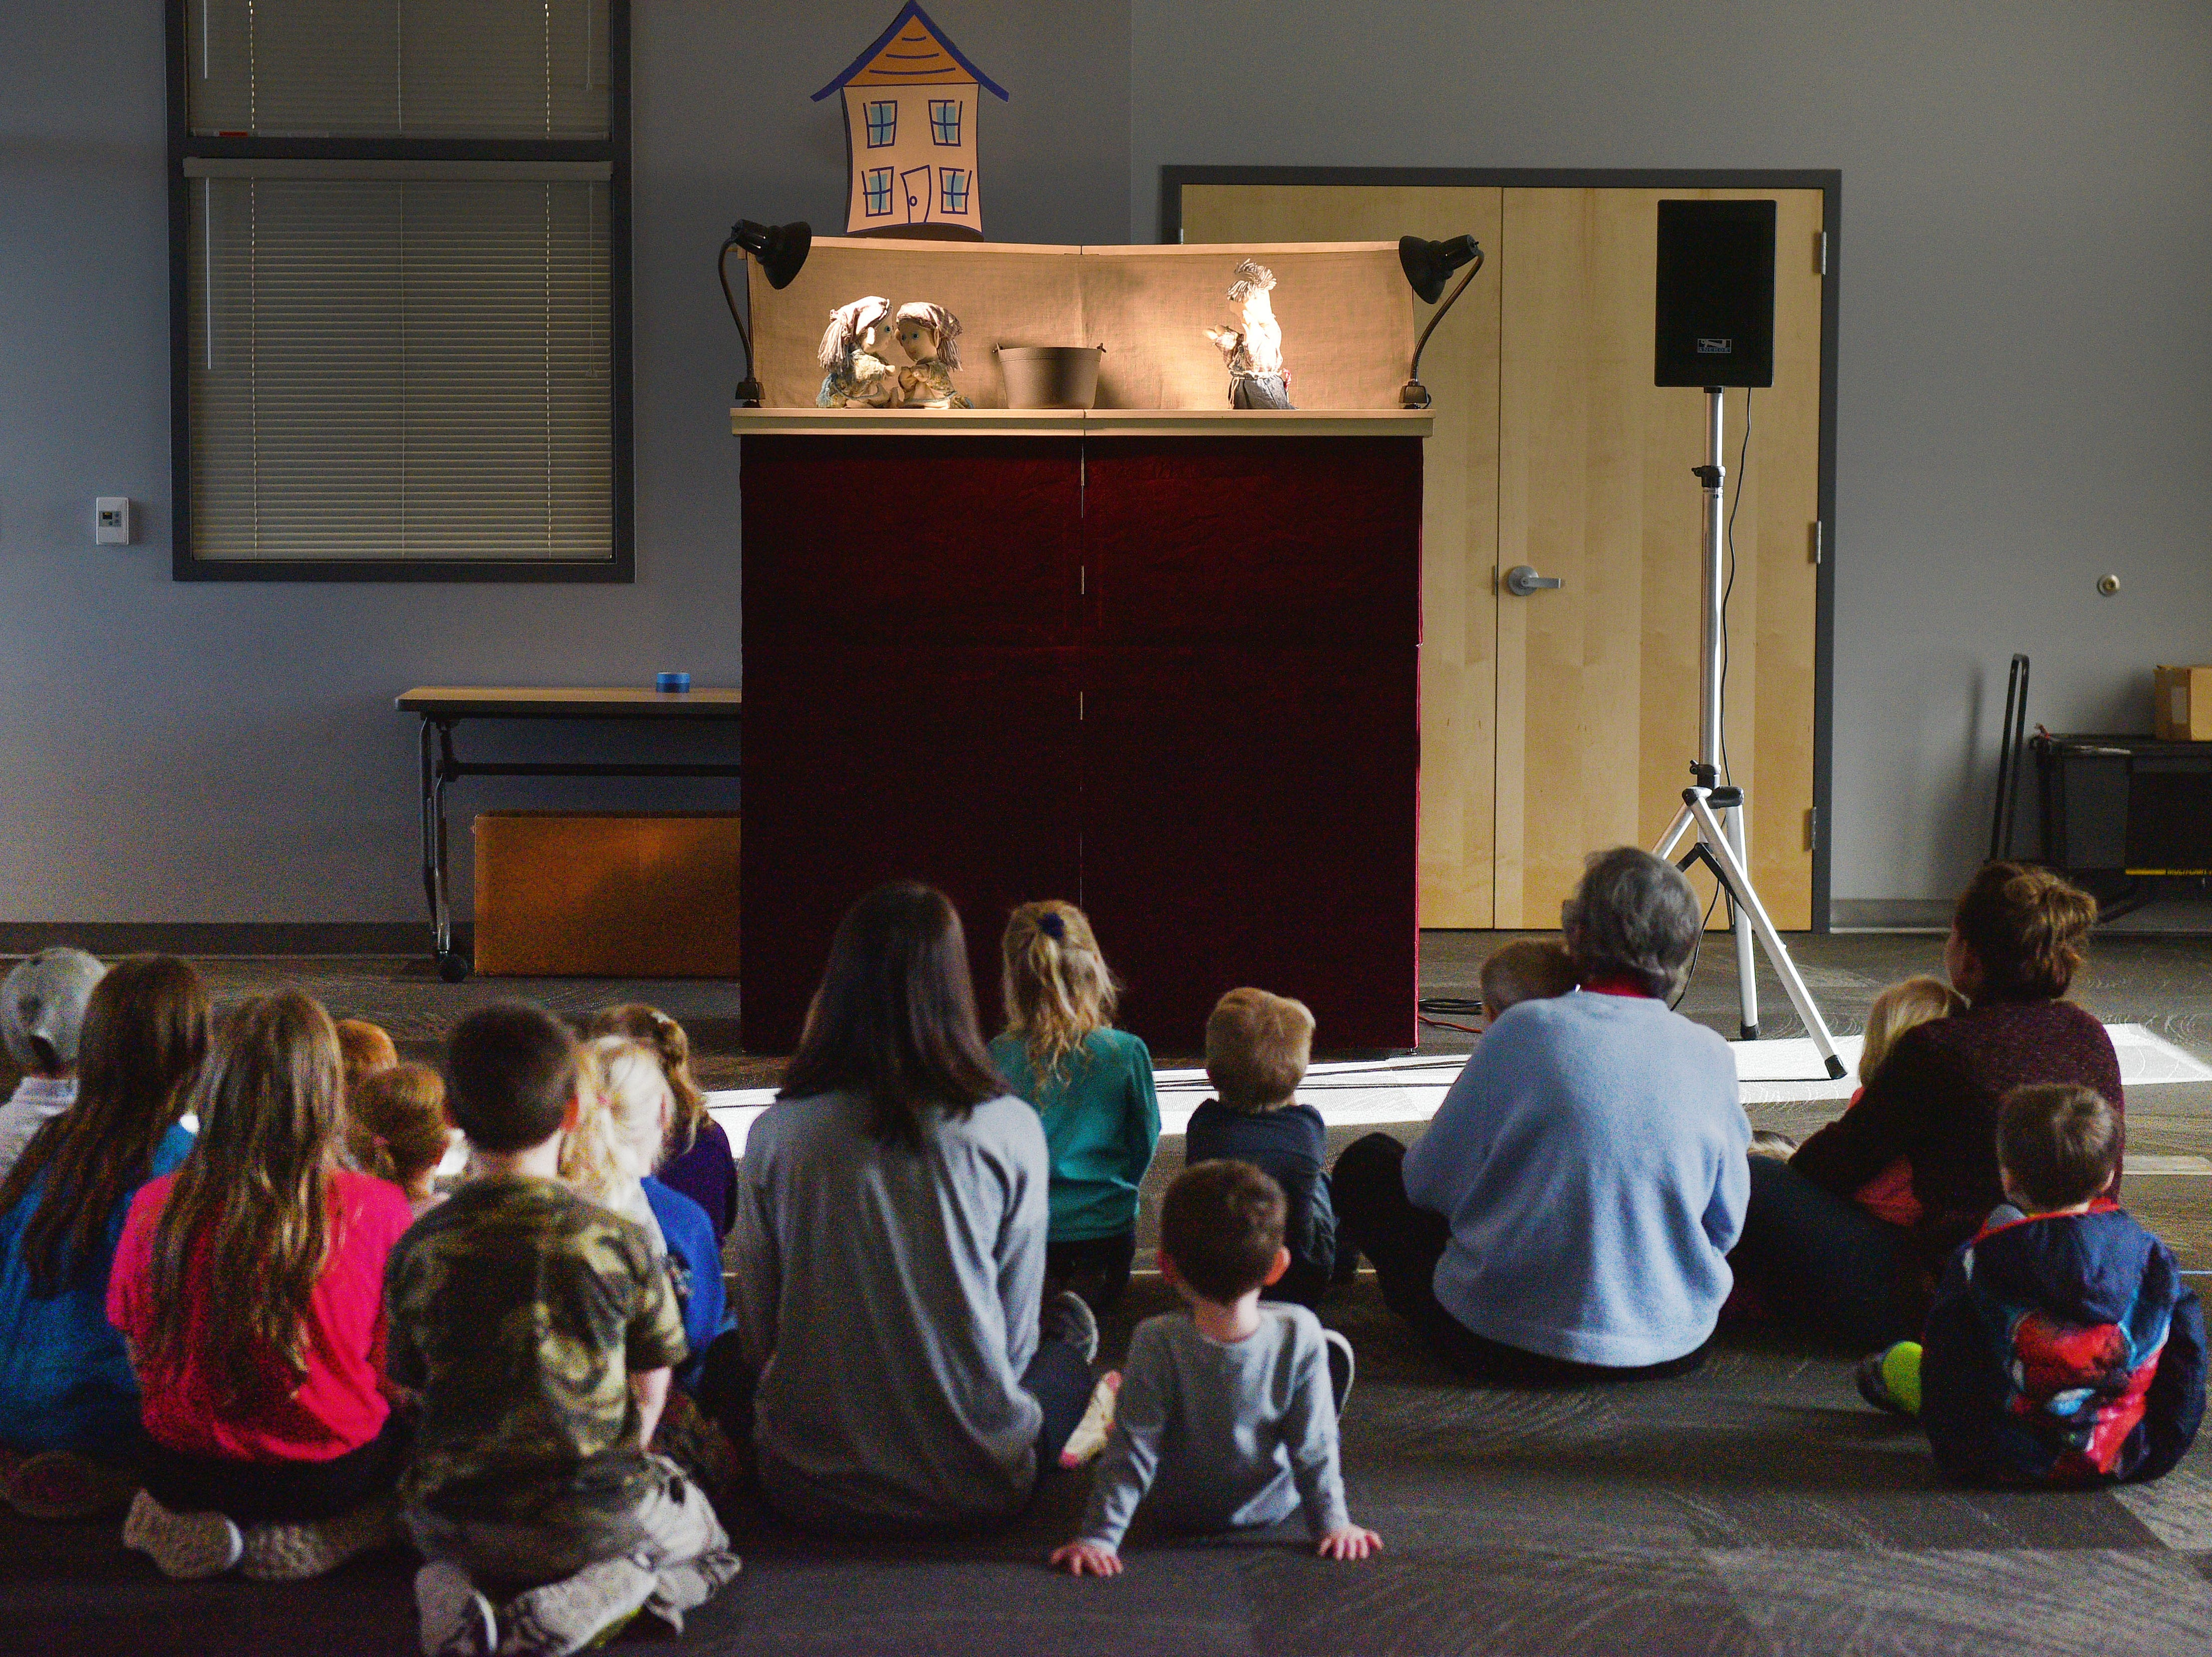 Siouxland Libraries performed The Christmas Gift puppet show at the Prairie West Branch Wednesday, Dec. 5, in Sioux Falls.